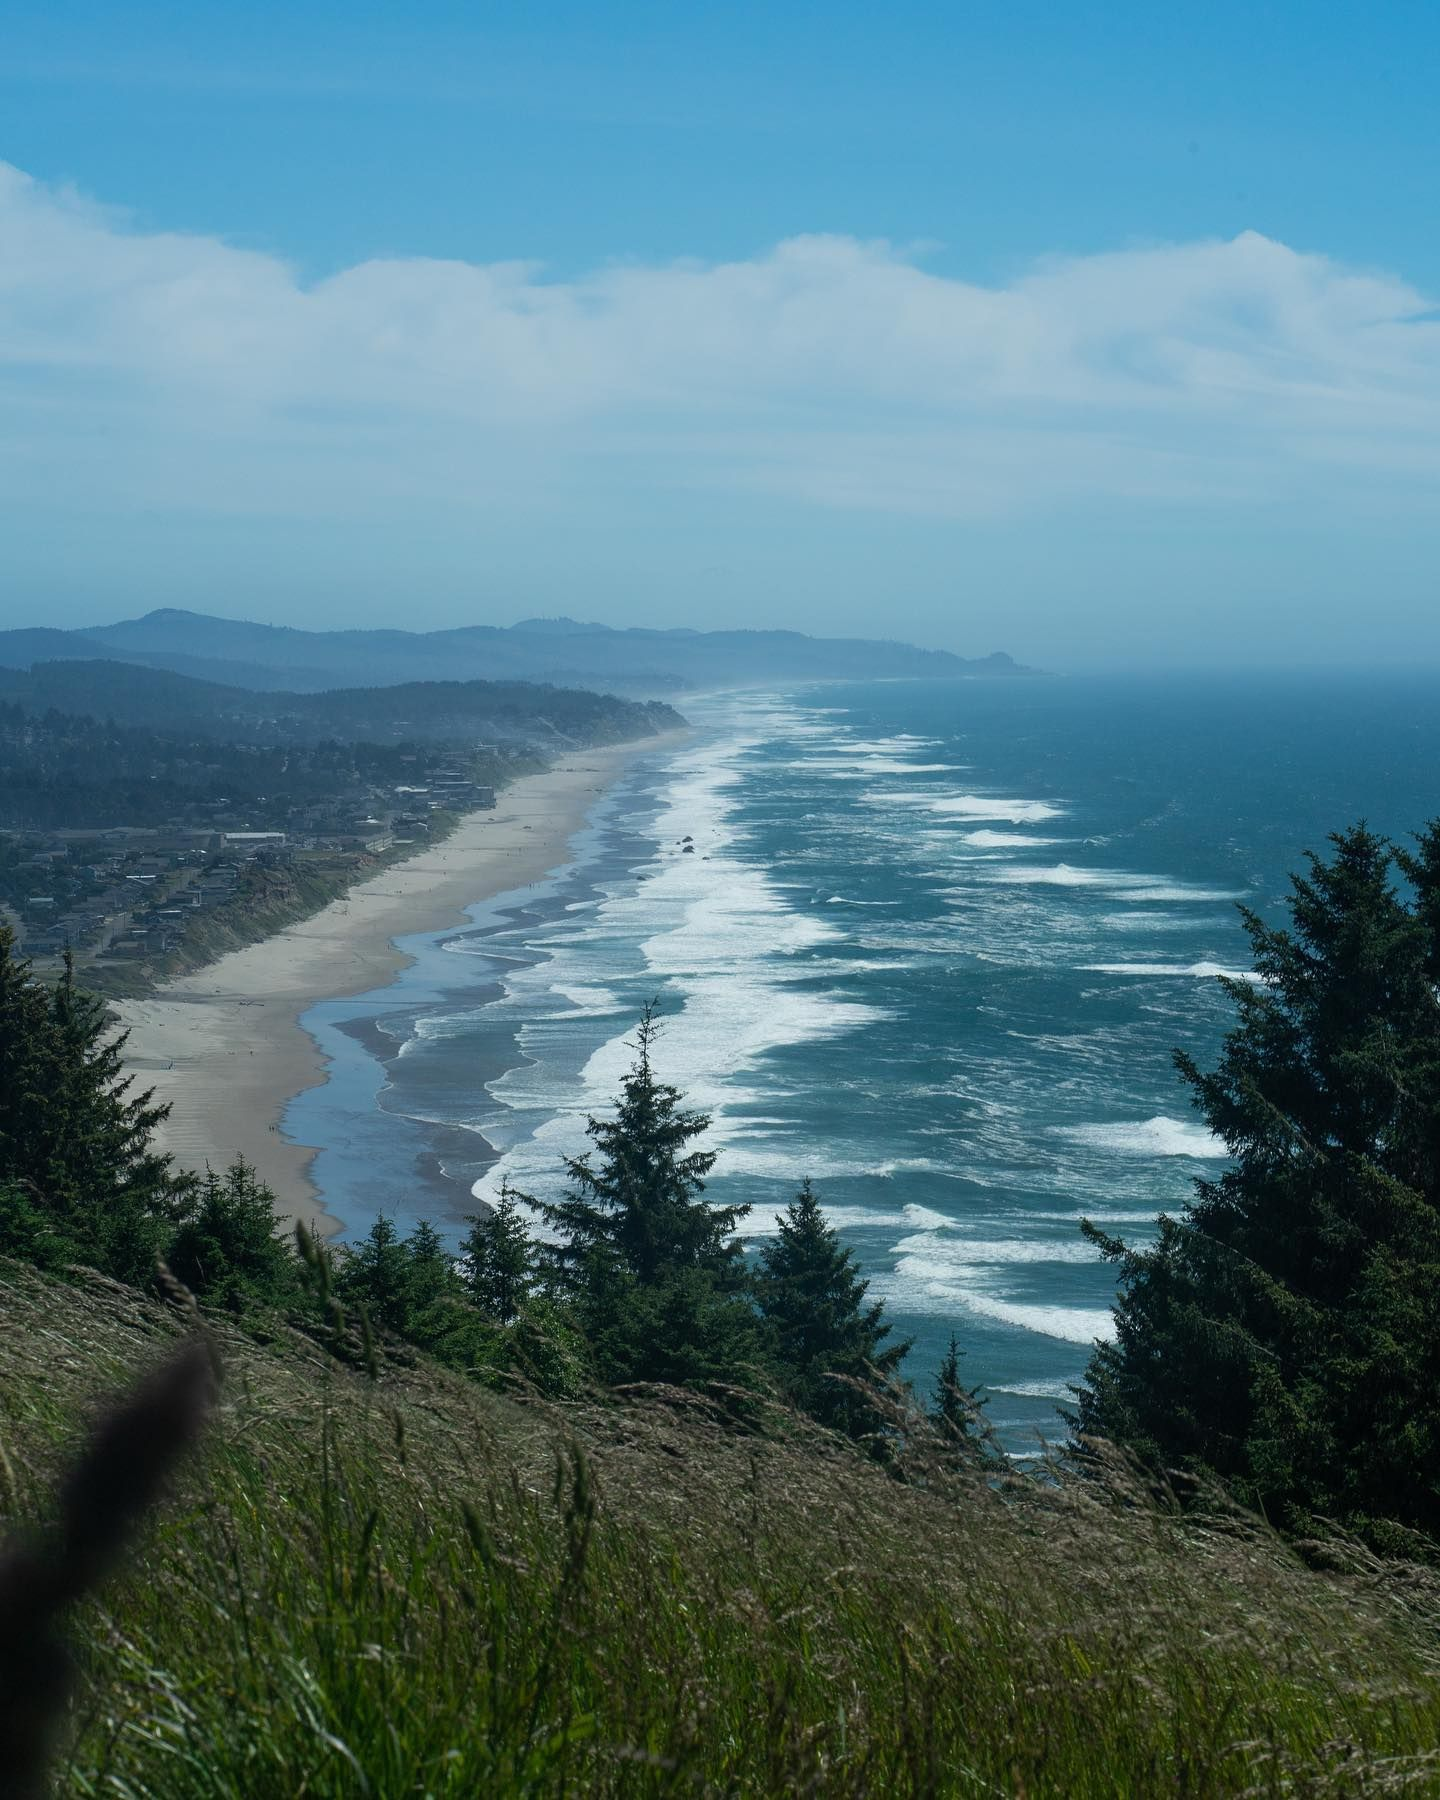 Such a beautiful view. It was worth the hike. . . . . . #shotbykadar #supportblackphotographers #pnwadepts #pnw #oregon #pacificnorthwest #bealpha #sonyalpha #oregoncoast #ocean #oceanview #coastalliving #coast #beach #beachlife #summer #beachday #beachvibes